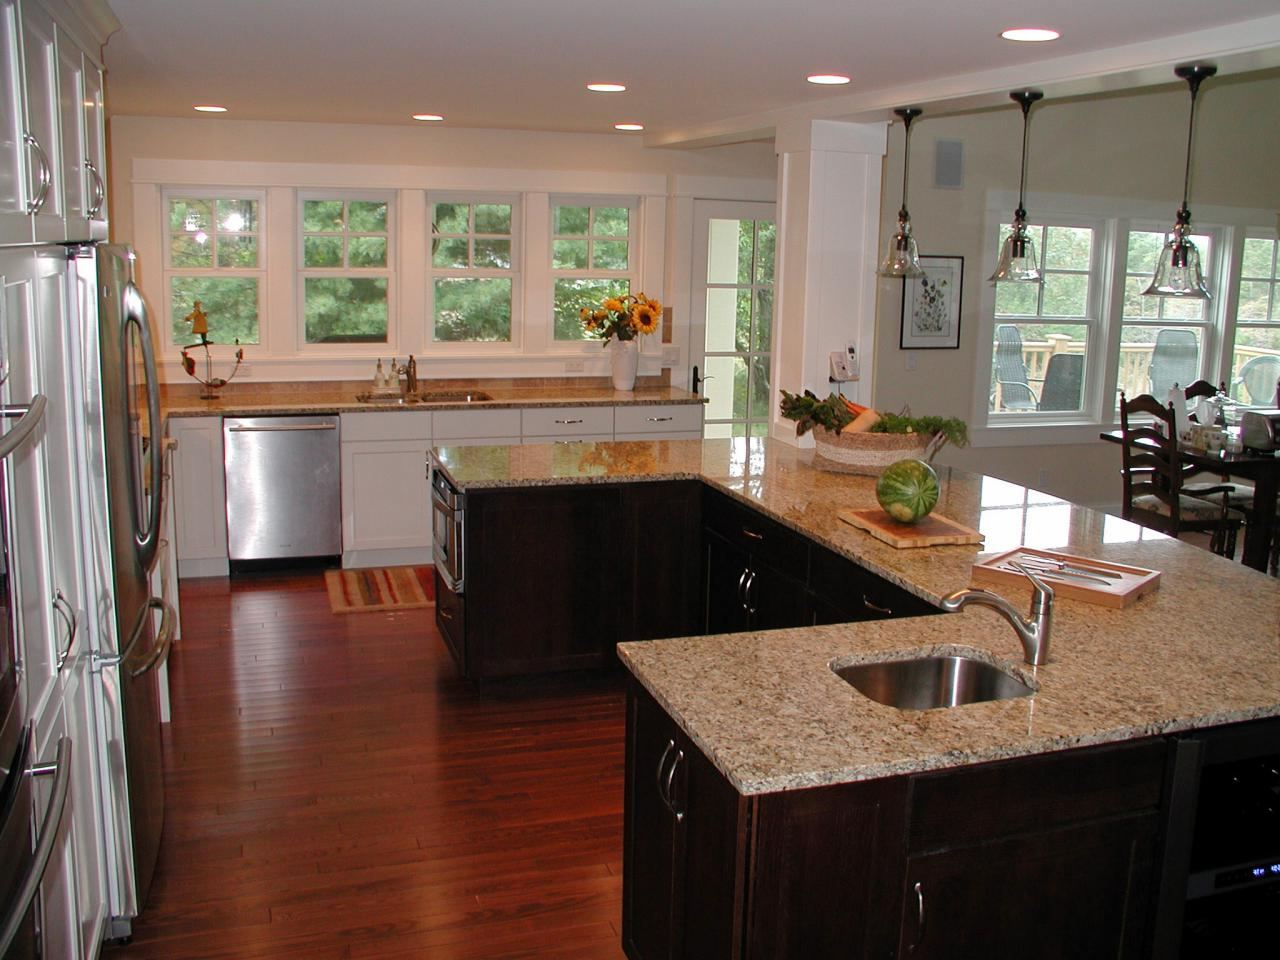 Kitchen Island Designs & Layouts - Great Lakes Granite & Marble on u shaped kitchen island, u shaped kitchen microwave, u shaped kitchen kitchen, u shaped kitchen apron sink, u shaped kitchen cabinets,